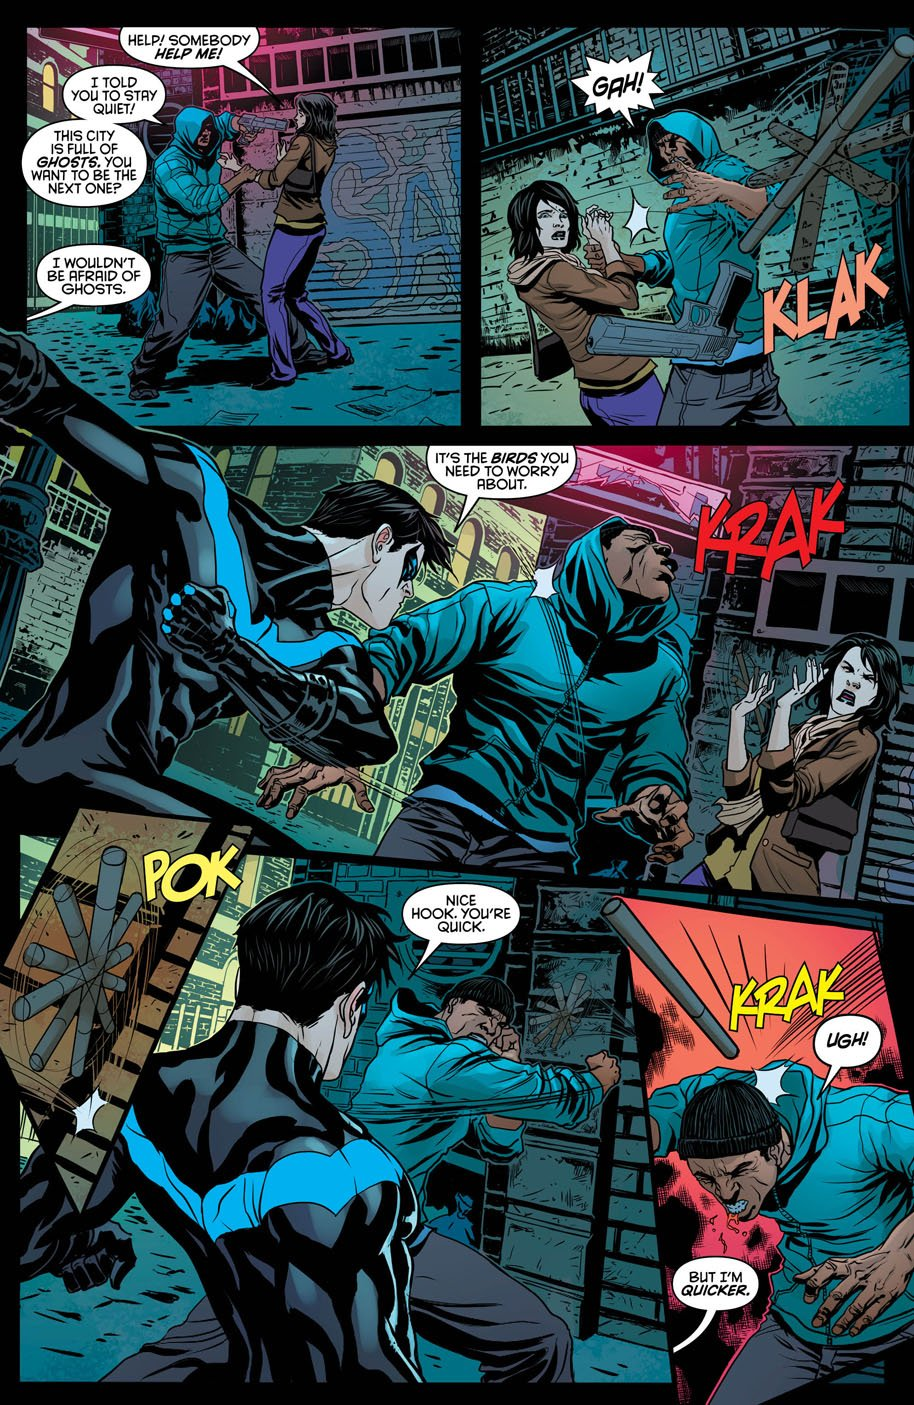 Nightwing 21 page 2